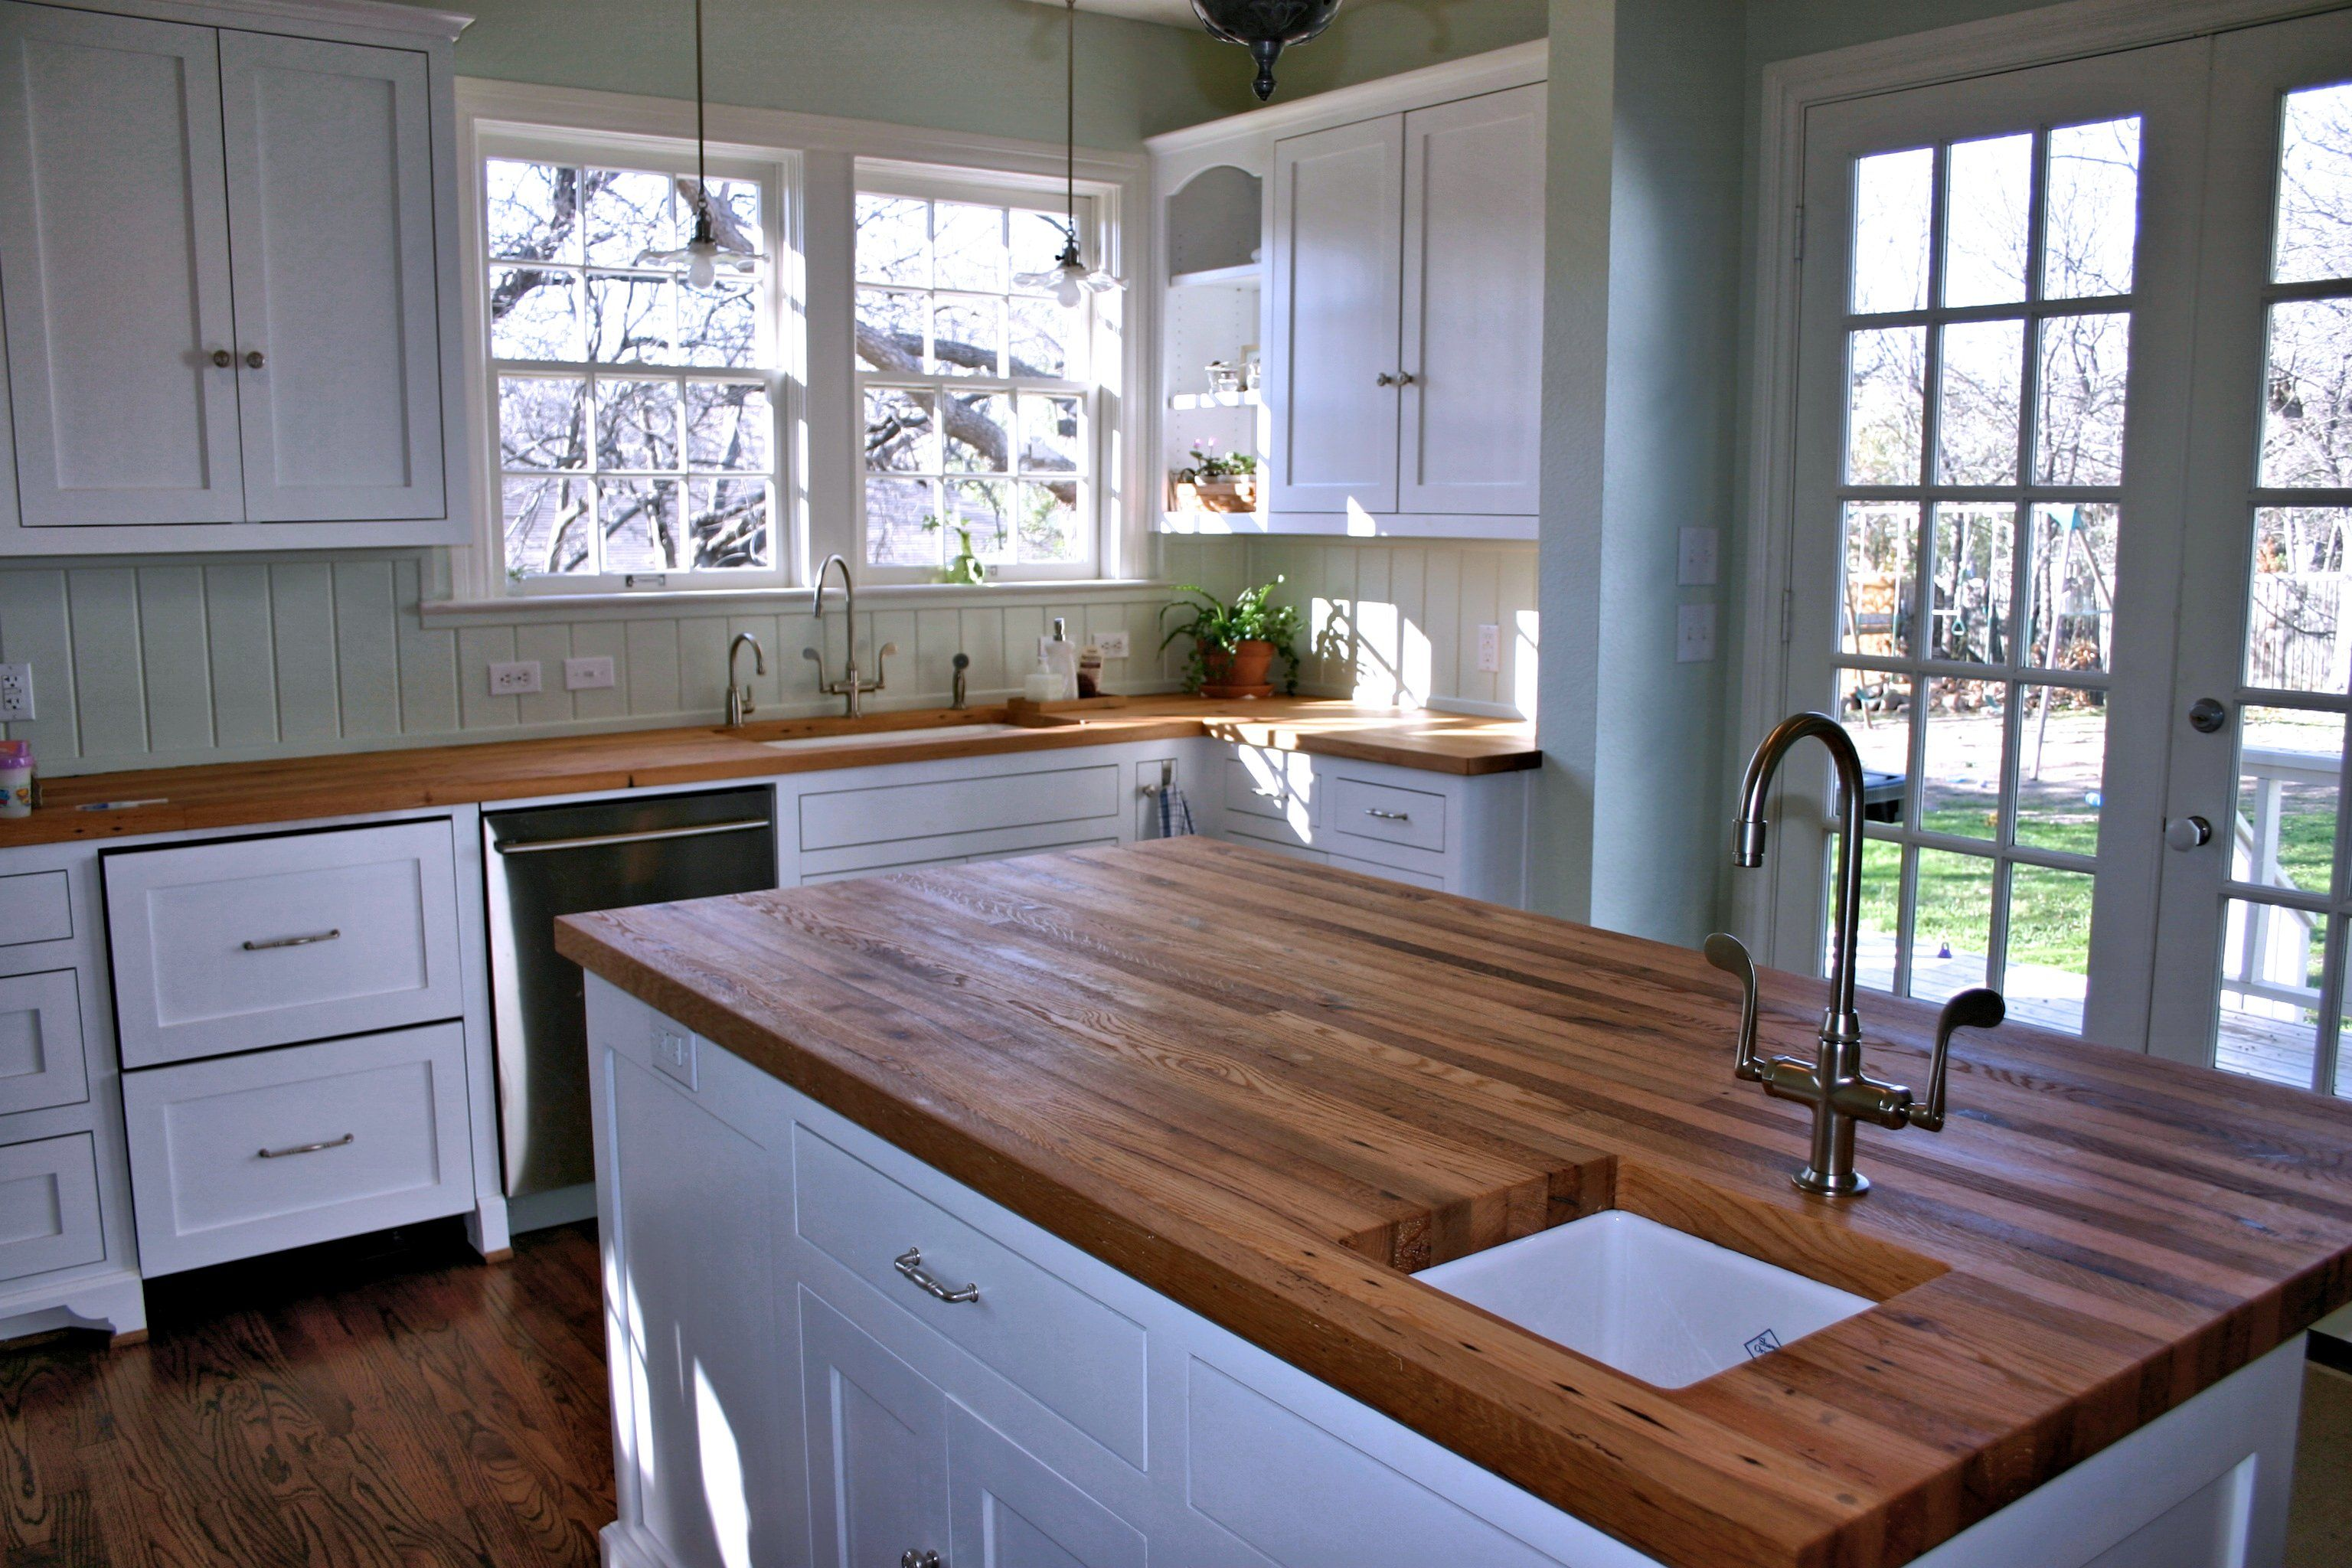 Reclaimed Wood Countertops reclaimed white oak wood countertop photo gallery,devos custom